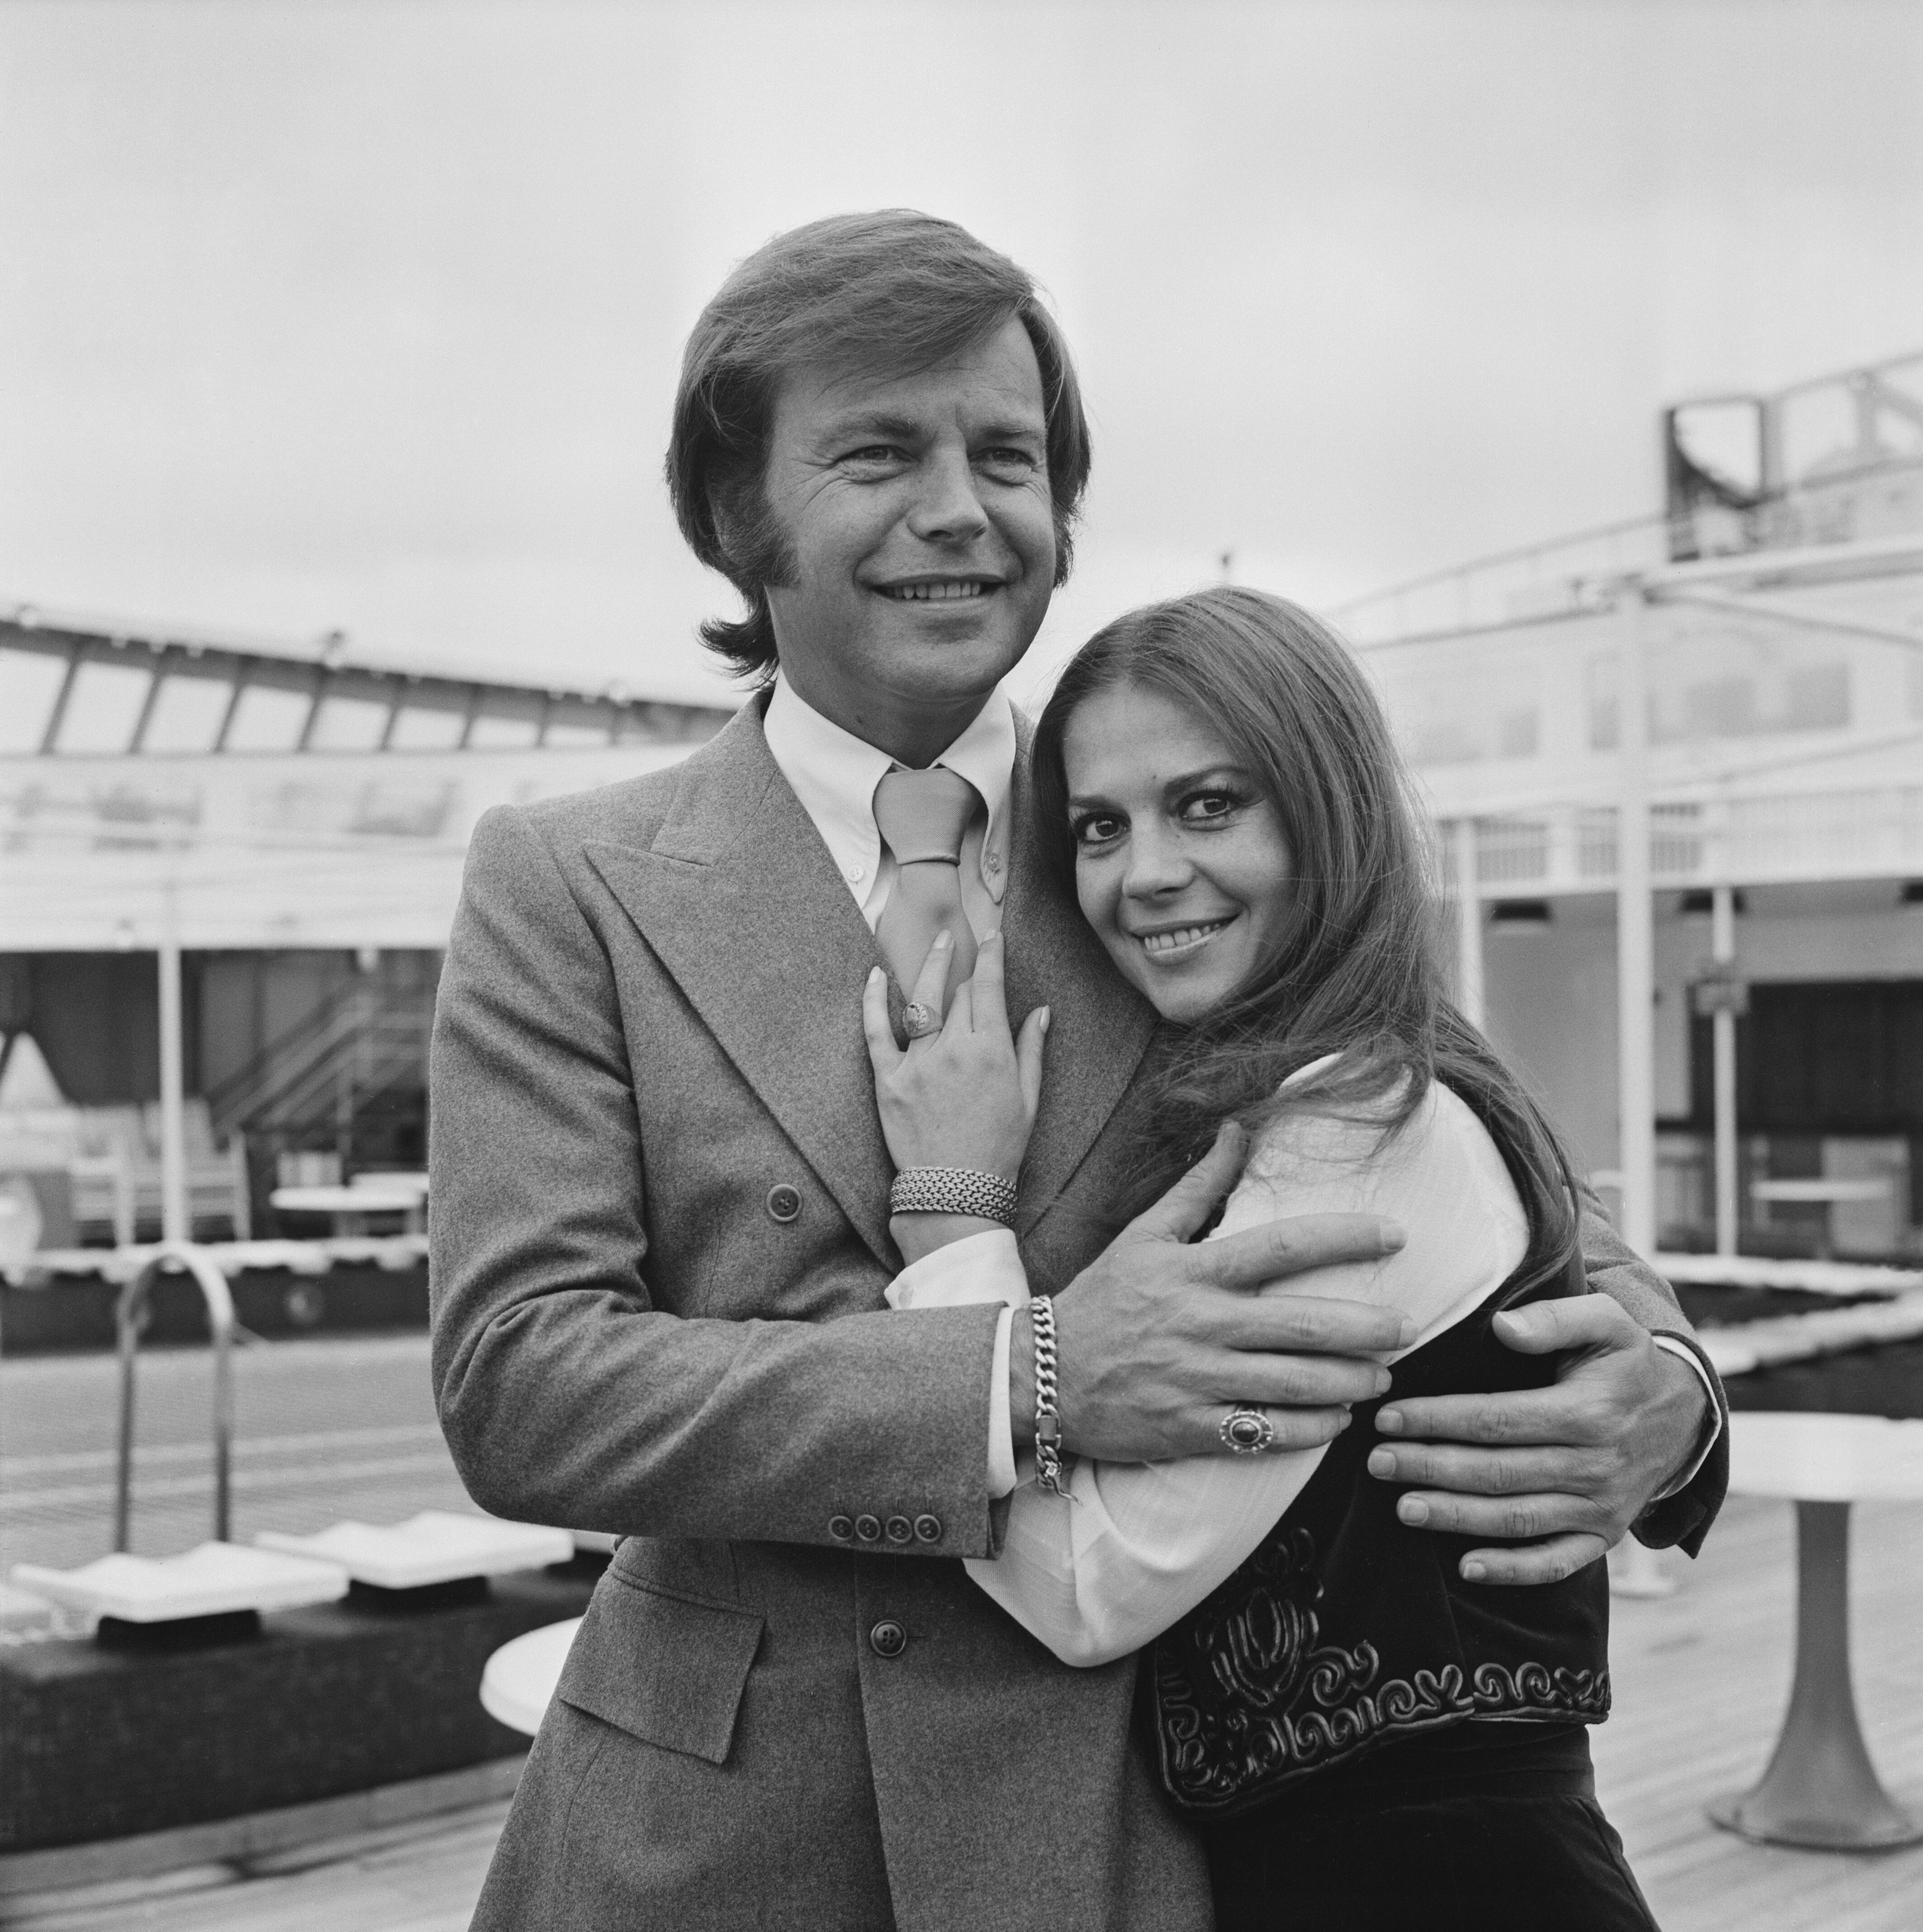 Robert Wagner with his former wife American actress Natalie Wood, 23rd April 1972. | Source: Getty Images